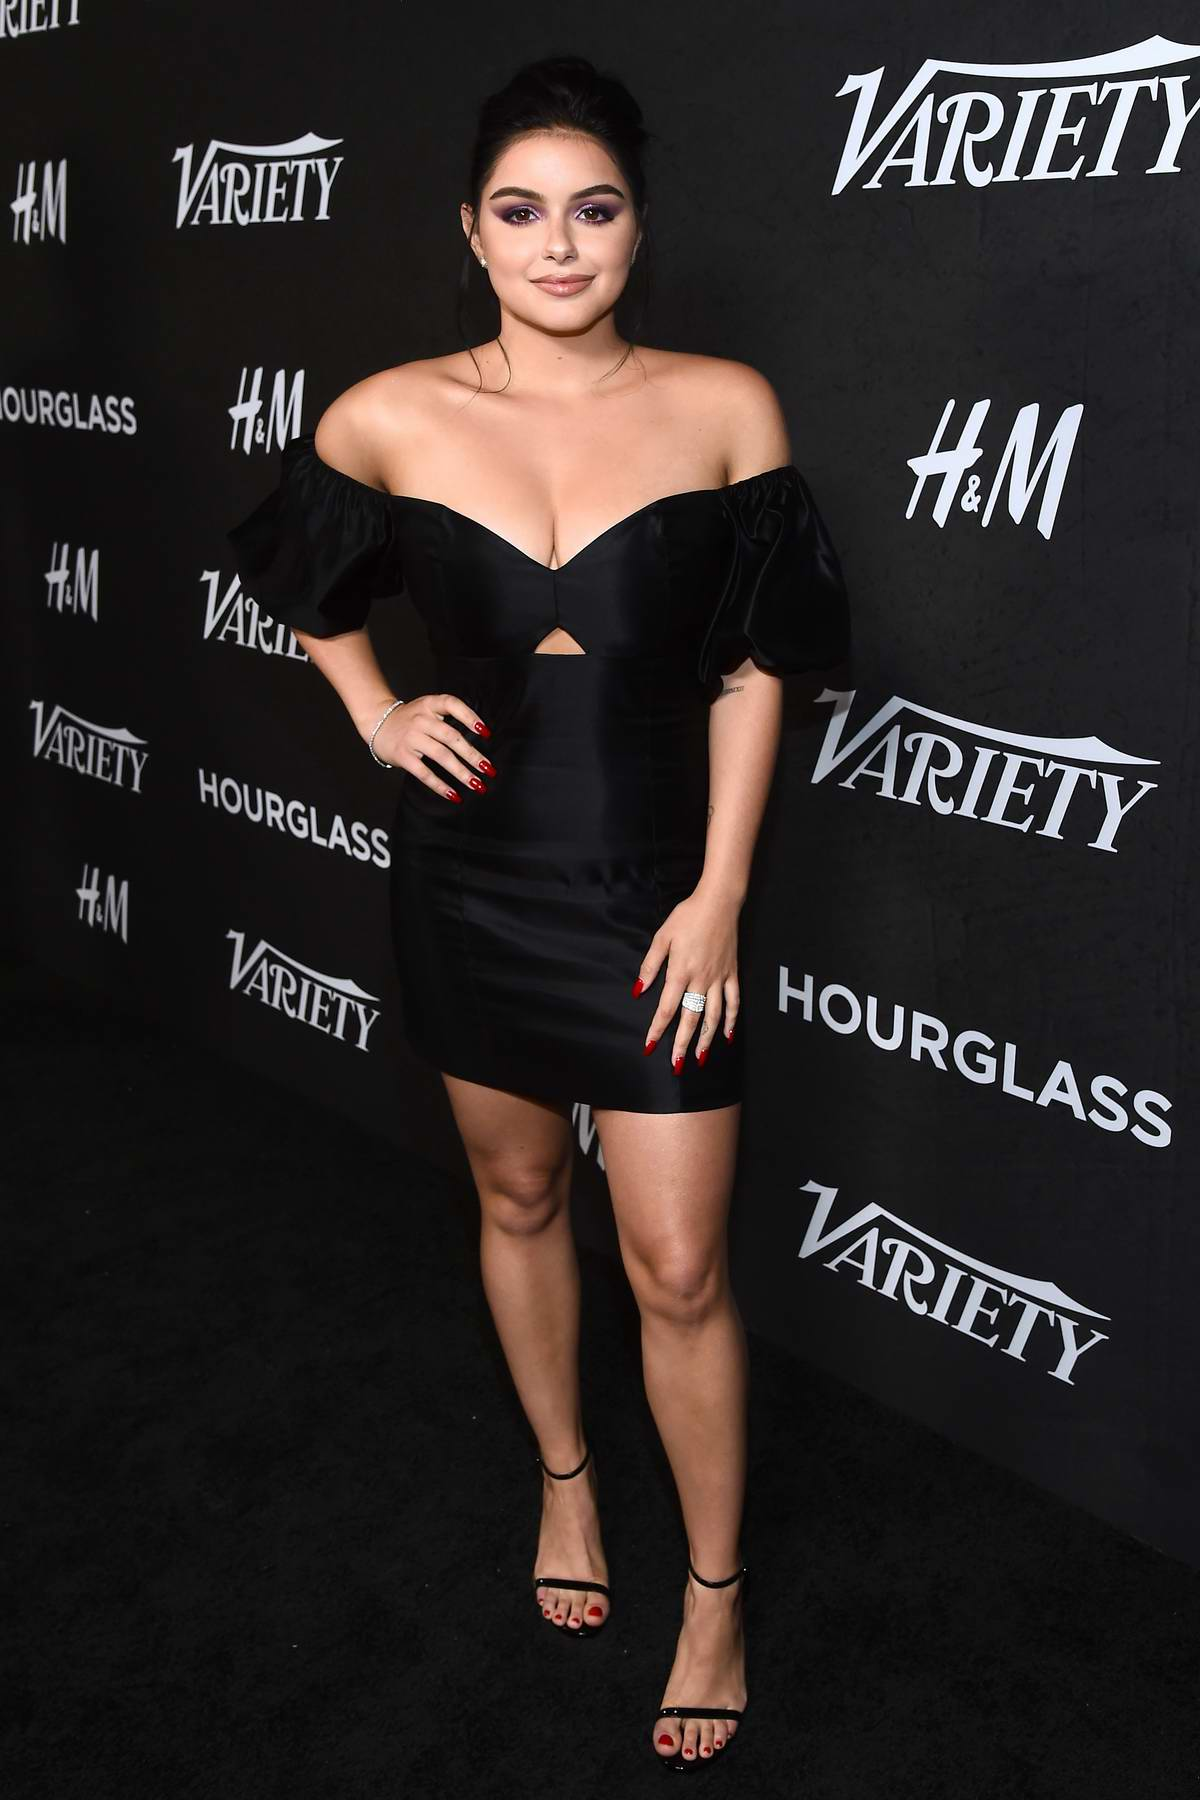 Ariel Winter attends 'Variety Annual Power of Young Hollywood' in Los Angeles